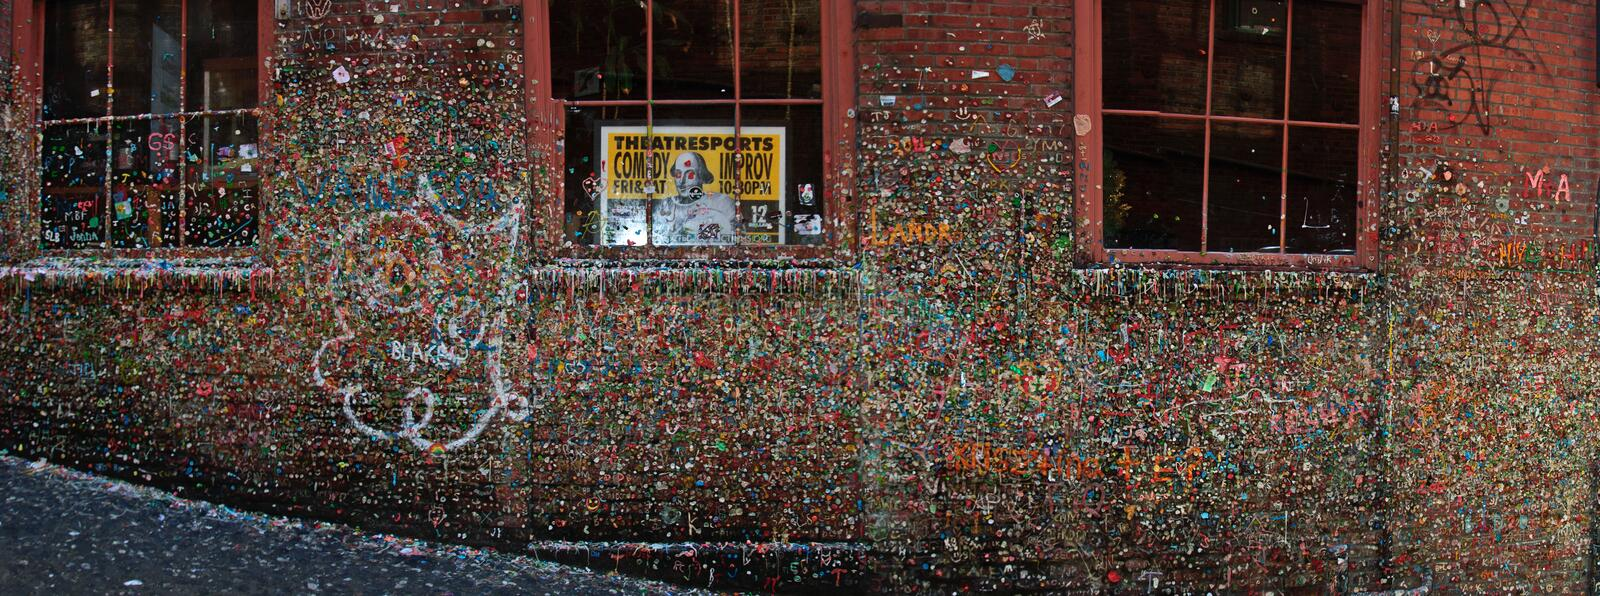 Gum Wall In Post Alley Seattle royalty free stock photos